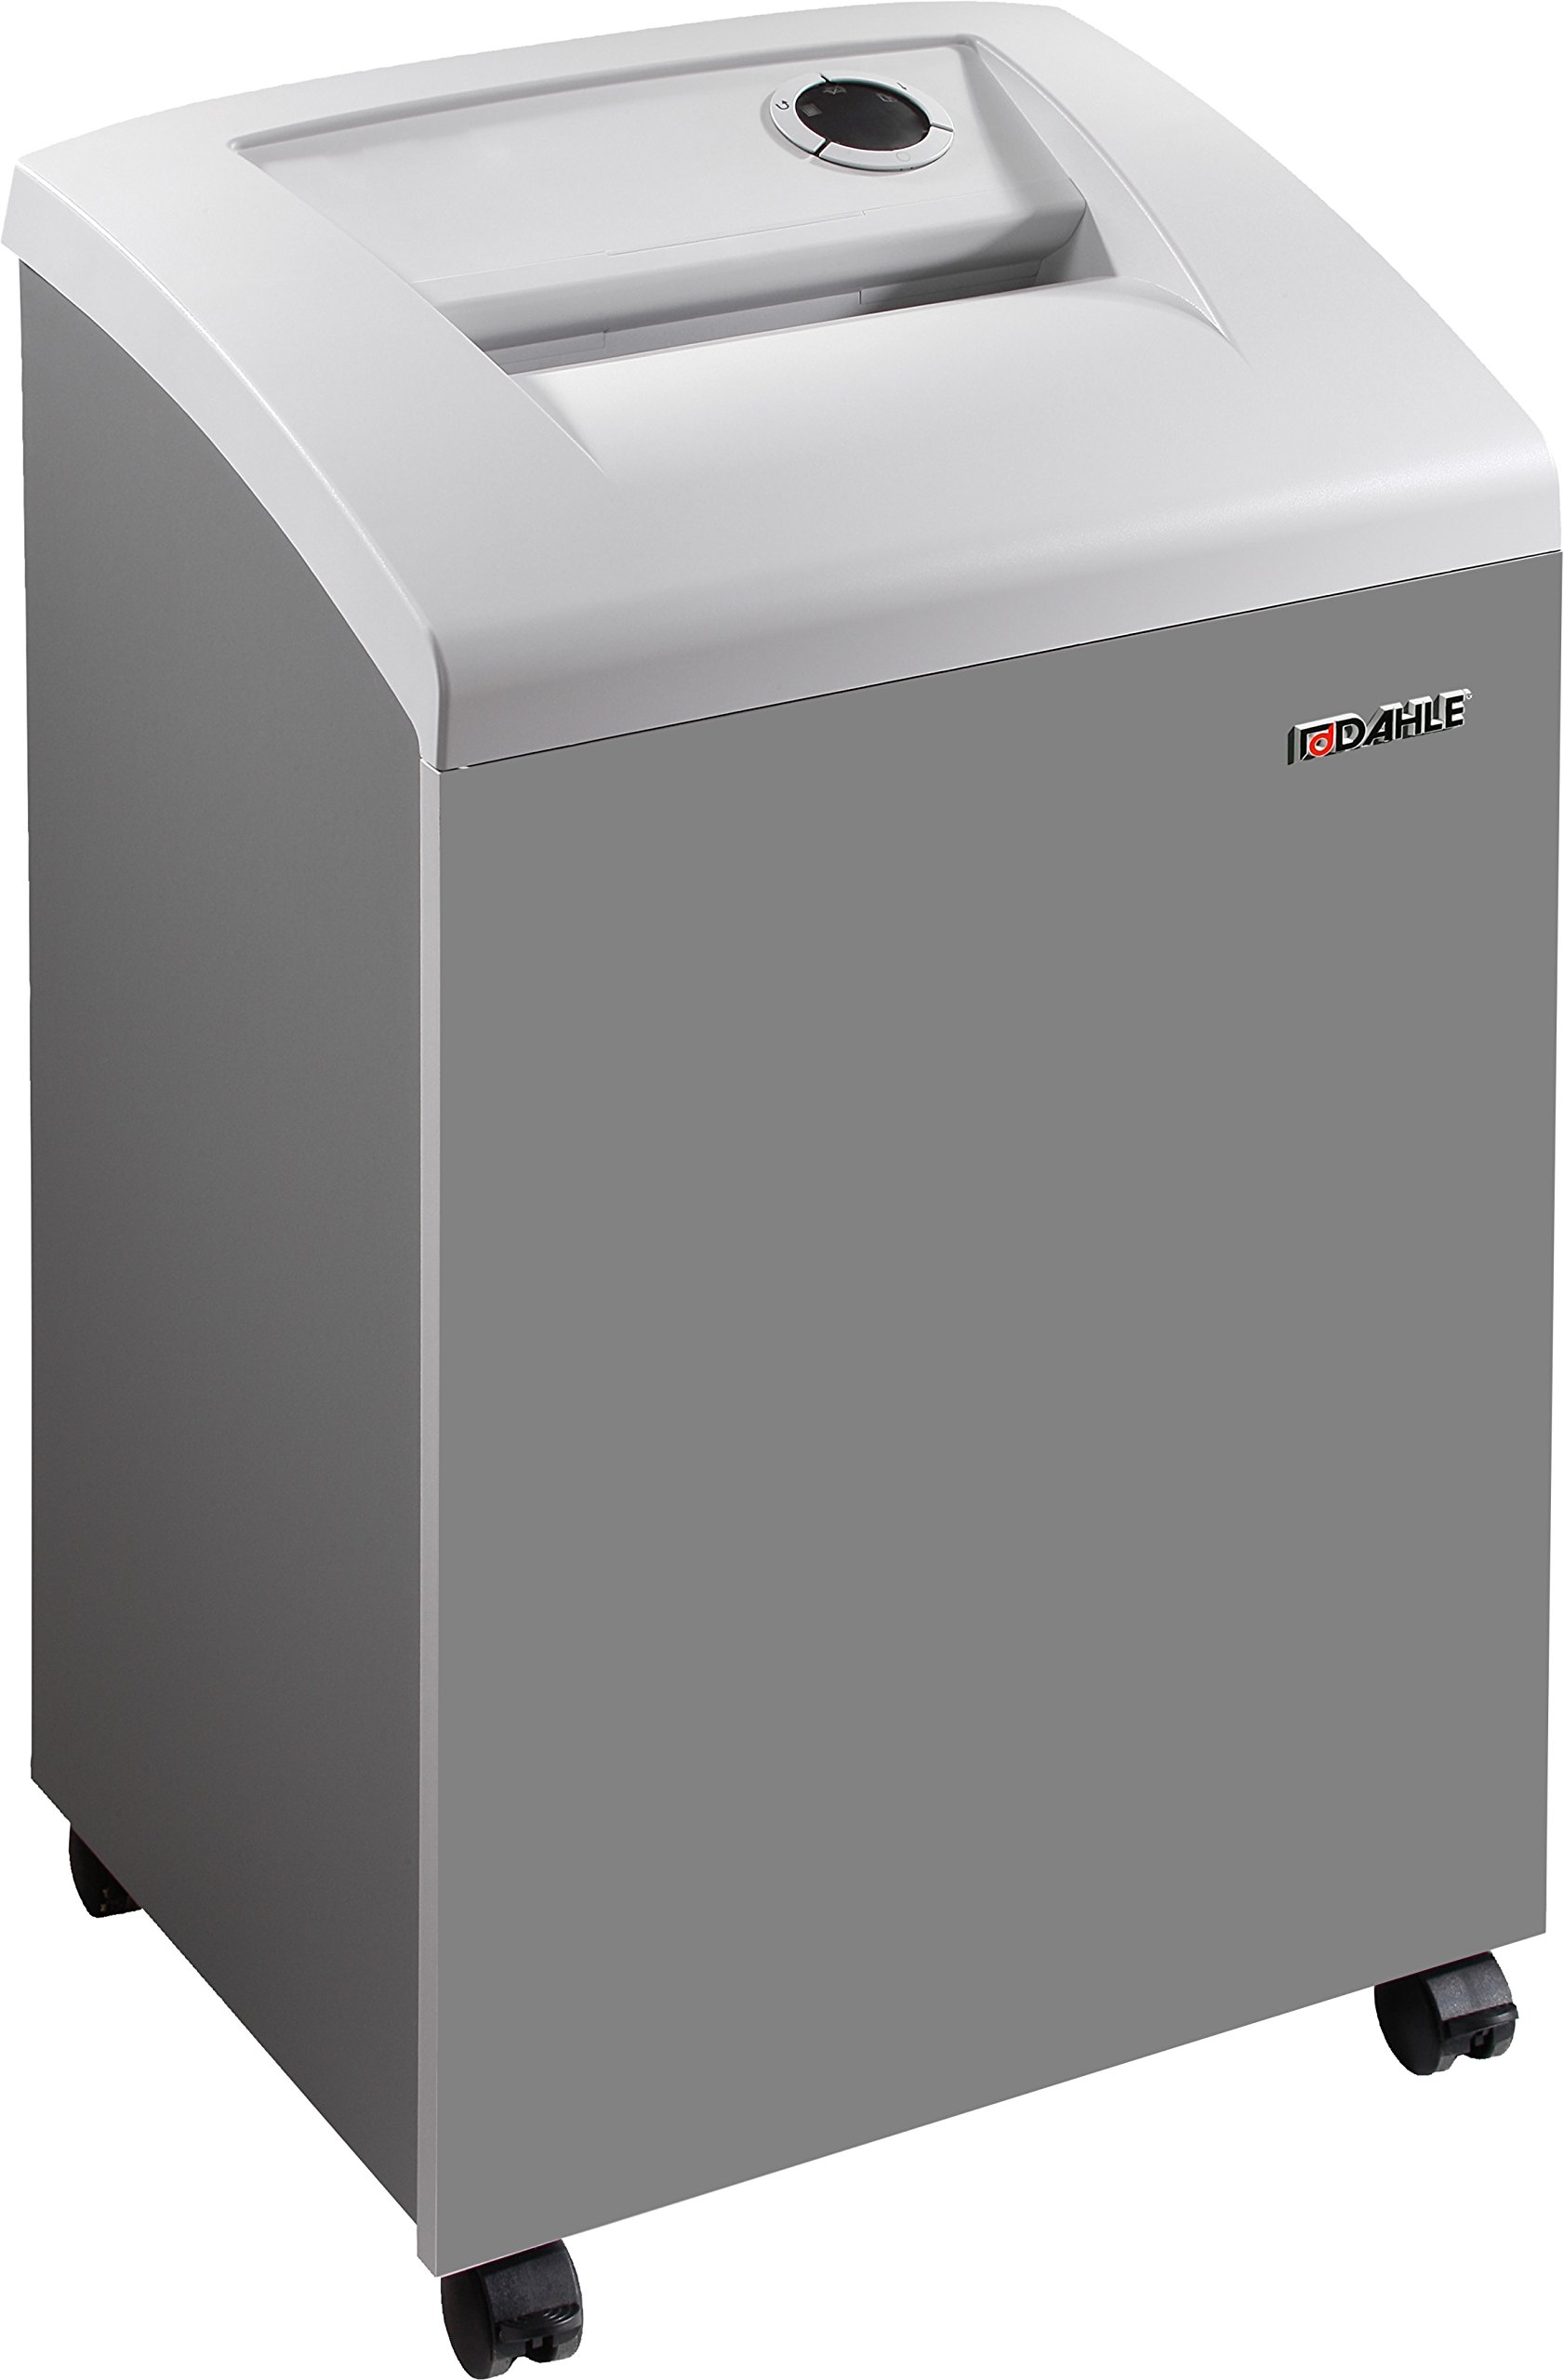 Dahle 40330 Paper Shredder w/Automatic Oiler, SmartPower, Jam Protection, Extreme Cross Cut, Security Level P-6, 6 Sheet Max, 1-3 Users